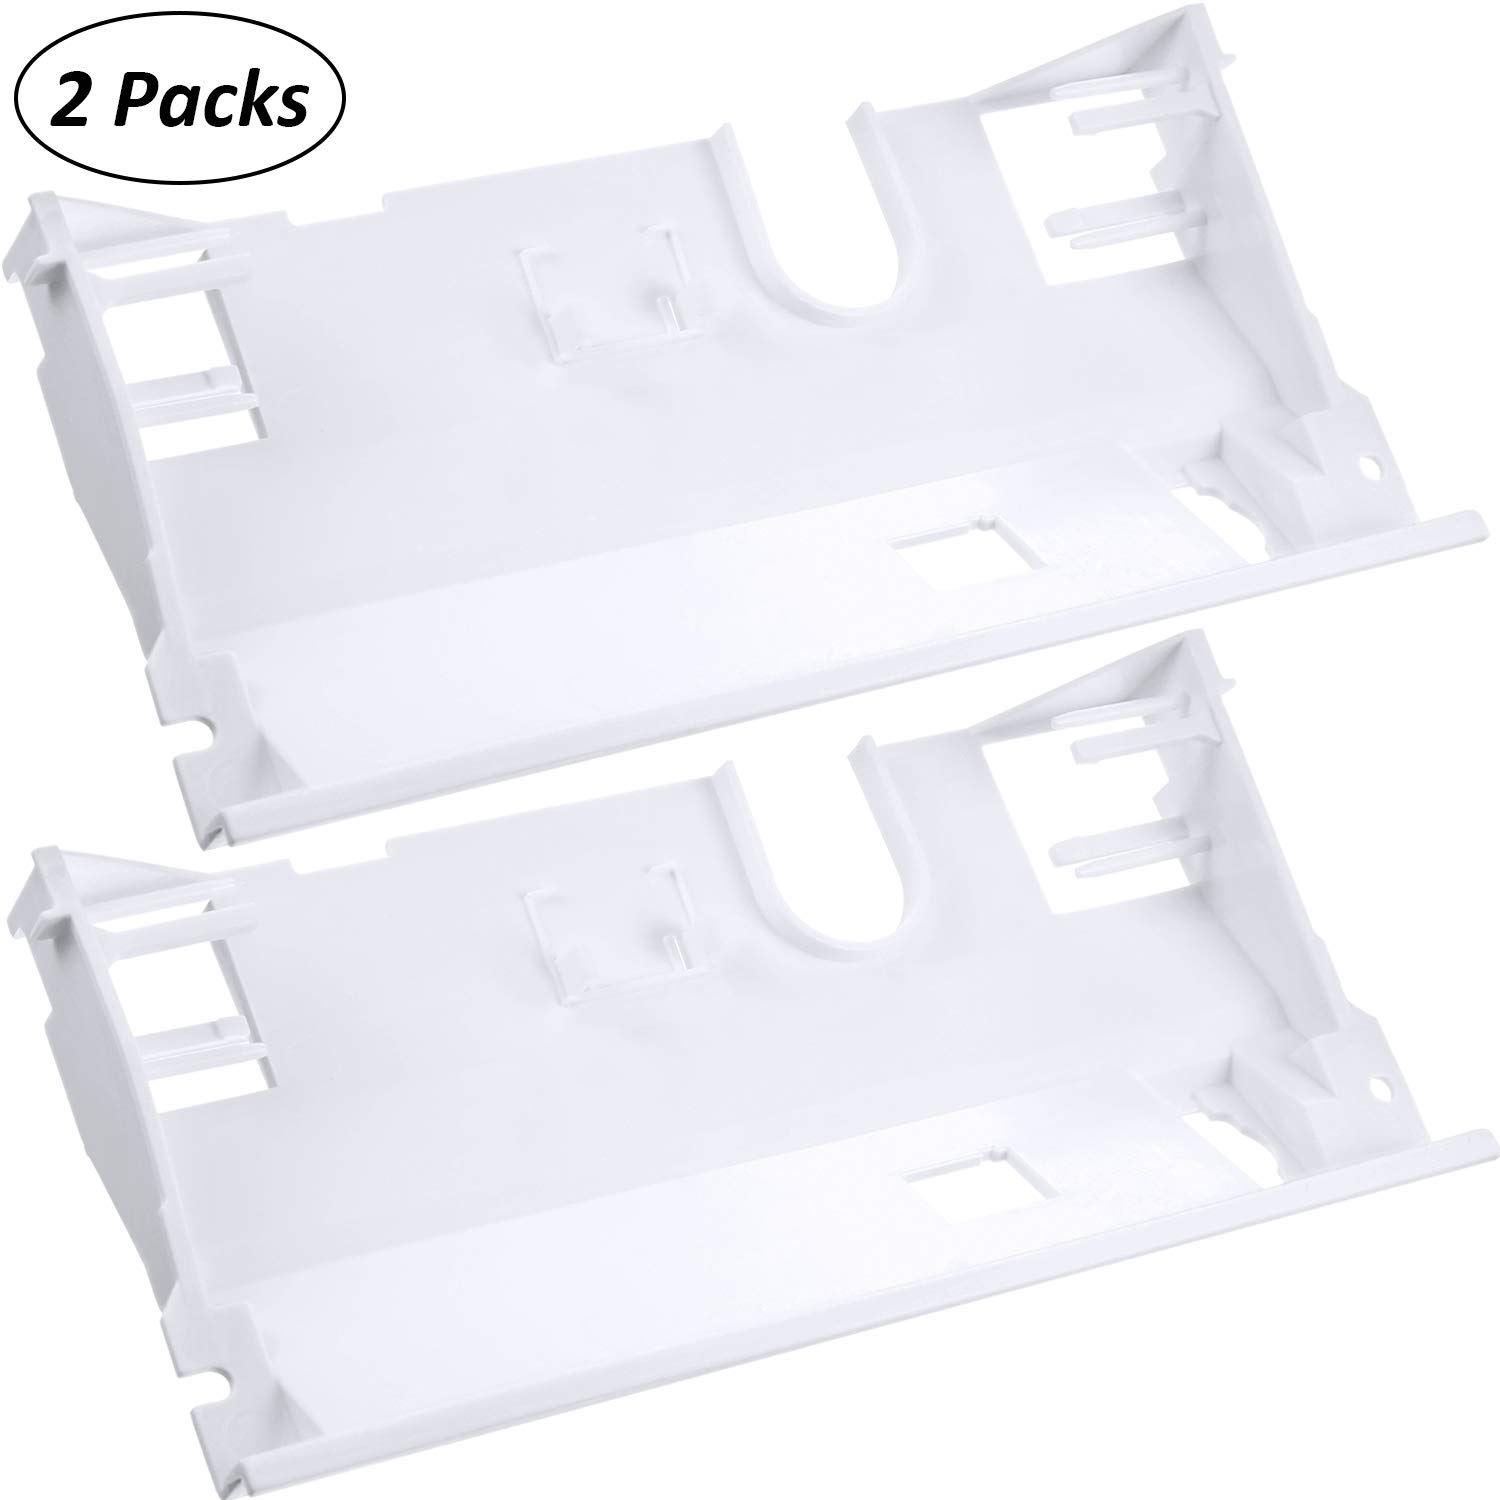 2 Pieces WP2180226 Bracket for Refrigerator Dispenser Control Compatible with Roper Maytag Kenmore Crosley Replace 2180226, 2180228, W10282667, PS11739027, EA327360